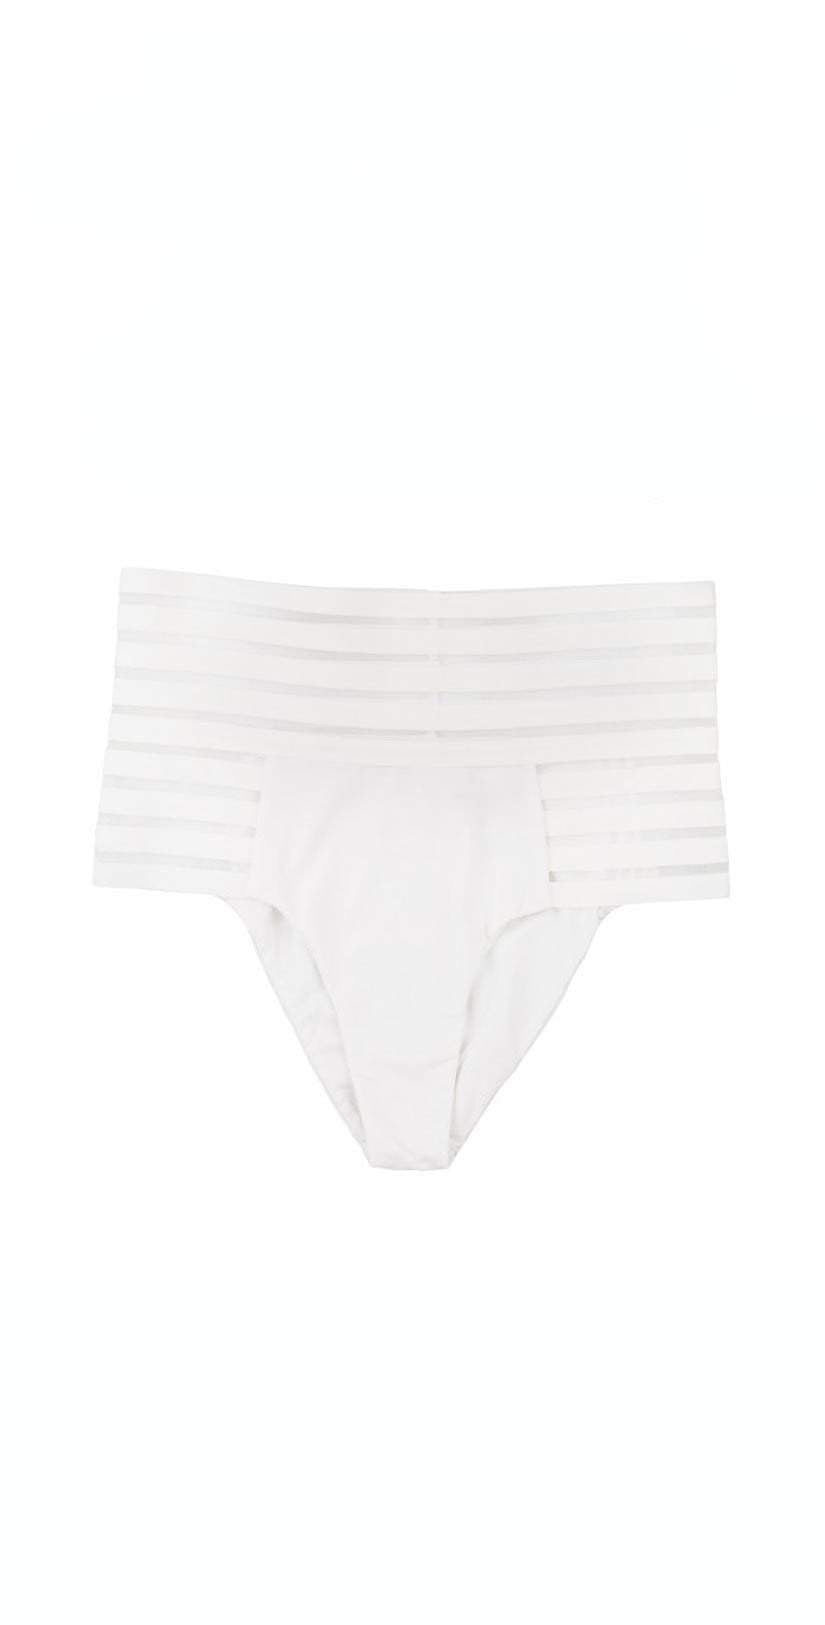 Beach Bunny Sheer Addiction High Waist Skimpy Bottom in White B16125B0-WHT Bottoms only